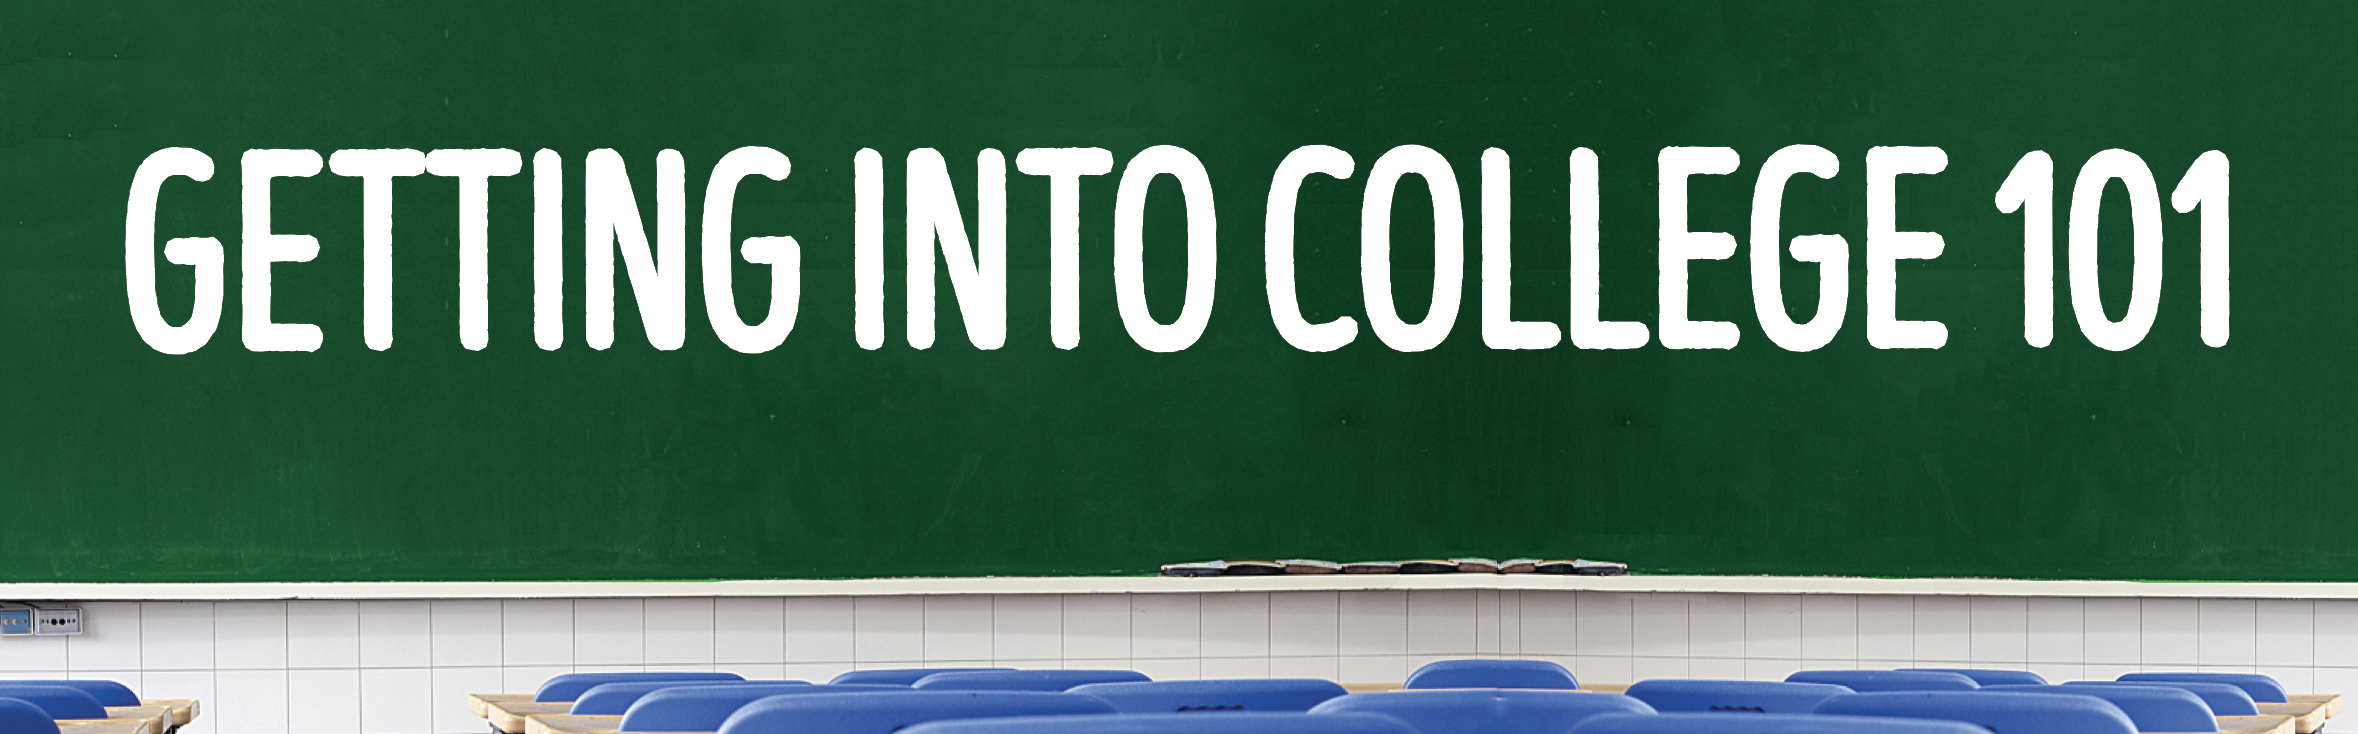 Image of a green chalkboard and seating with Getting Into College written on the board